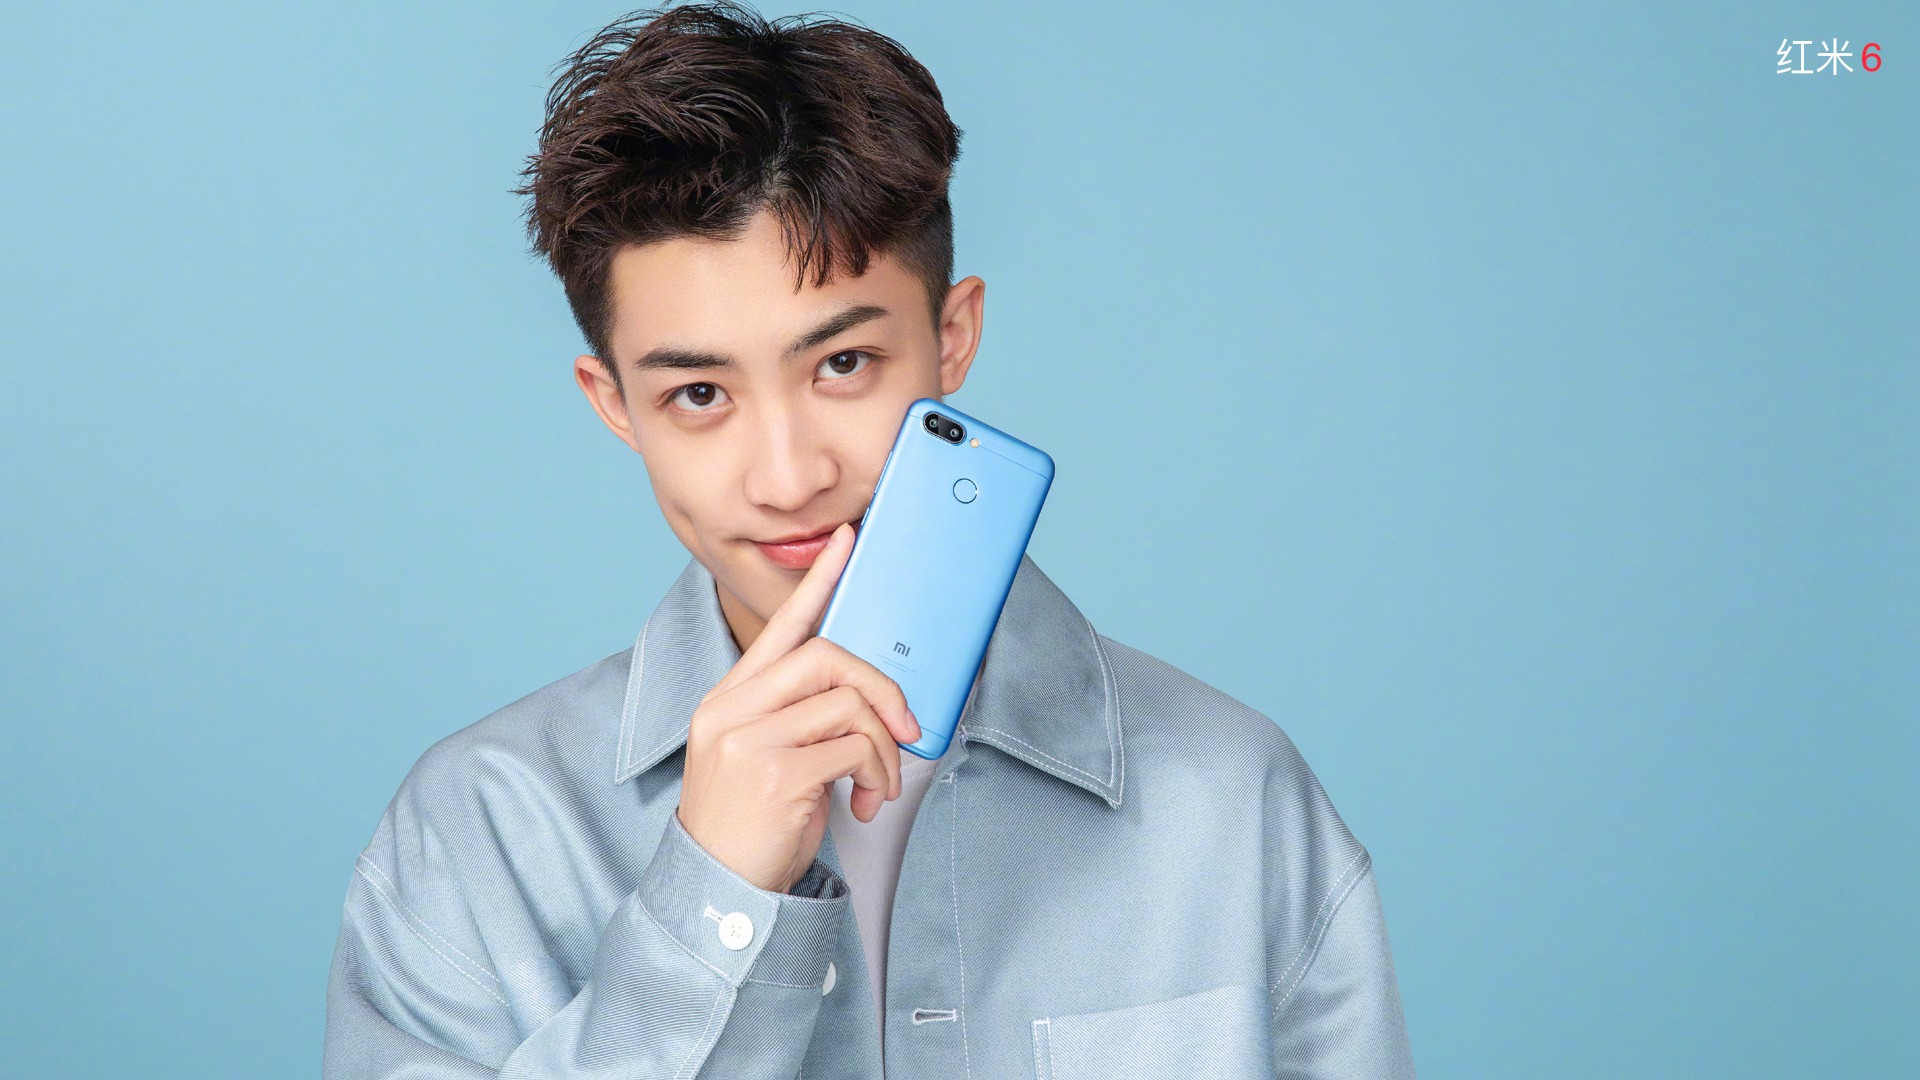 Xiaomi Redmi 6 trio launching in India soon as the teaser campaign begins 6